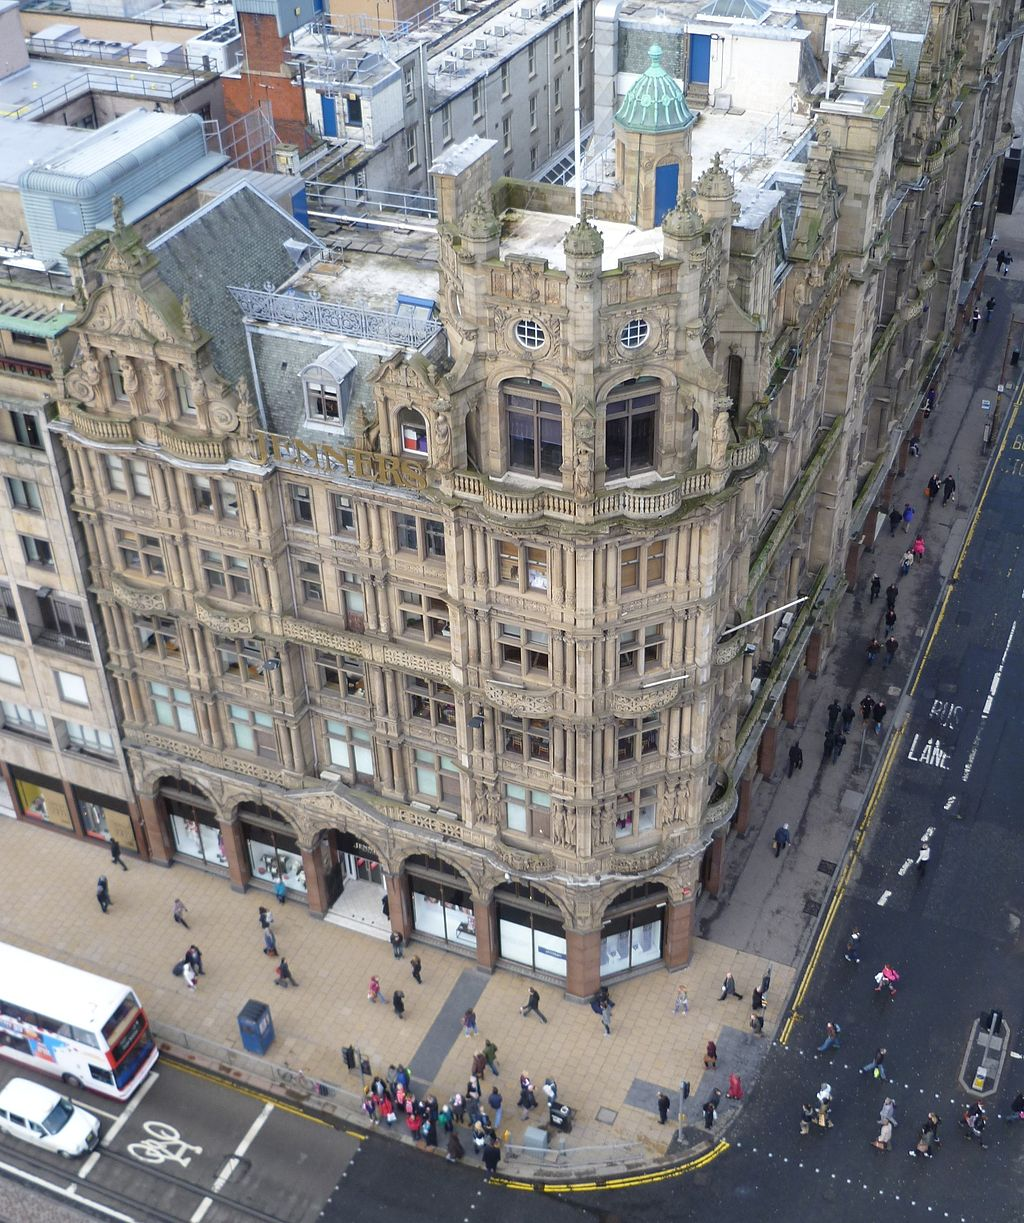 Jenners from the Scott Monument